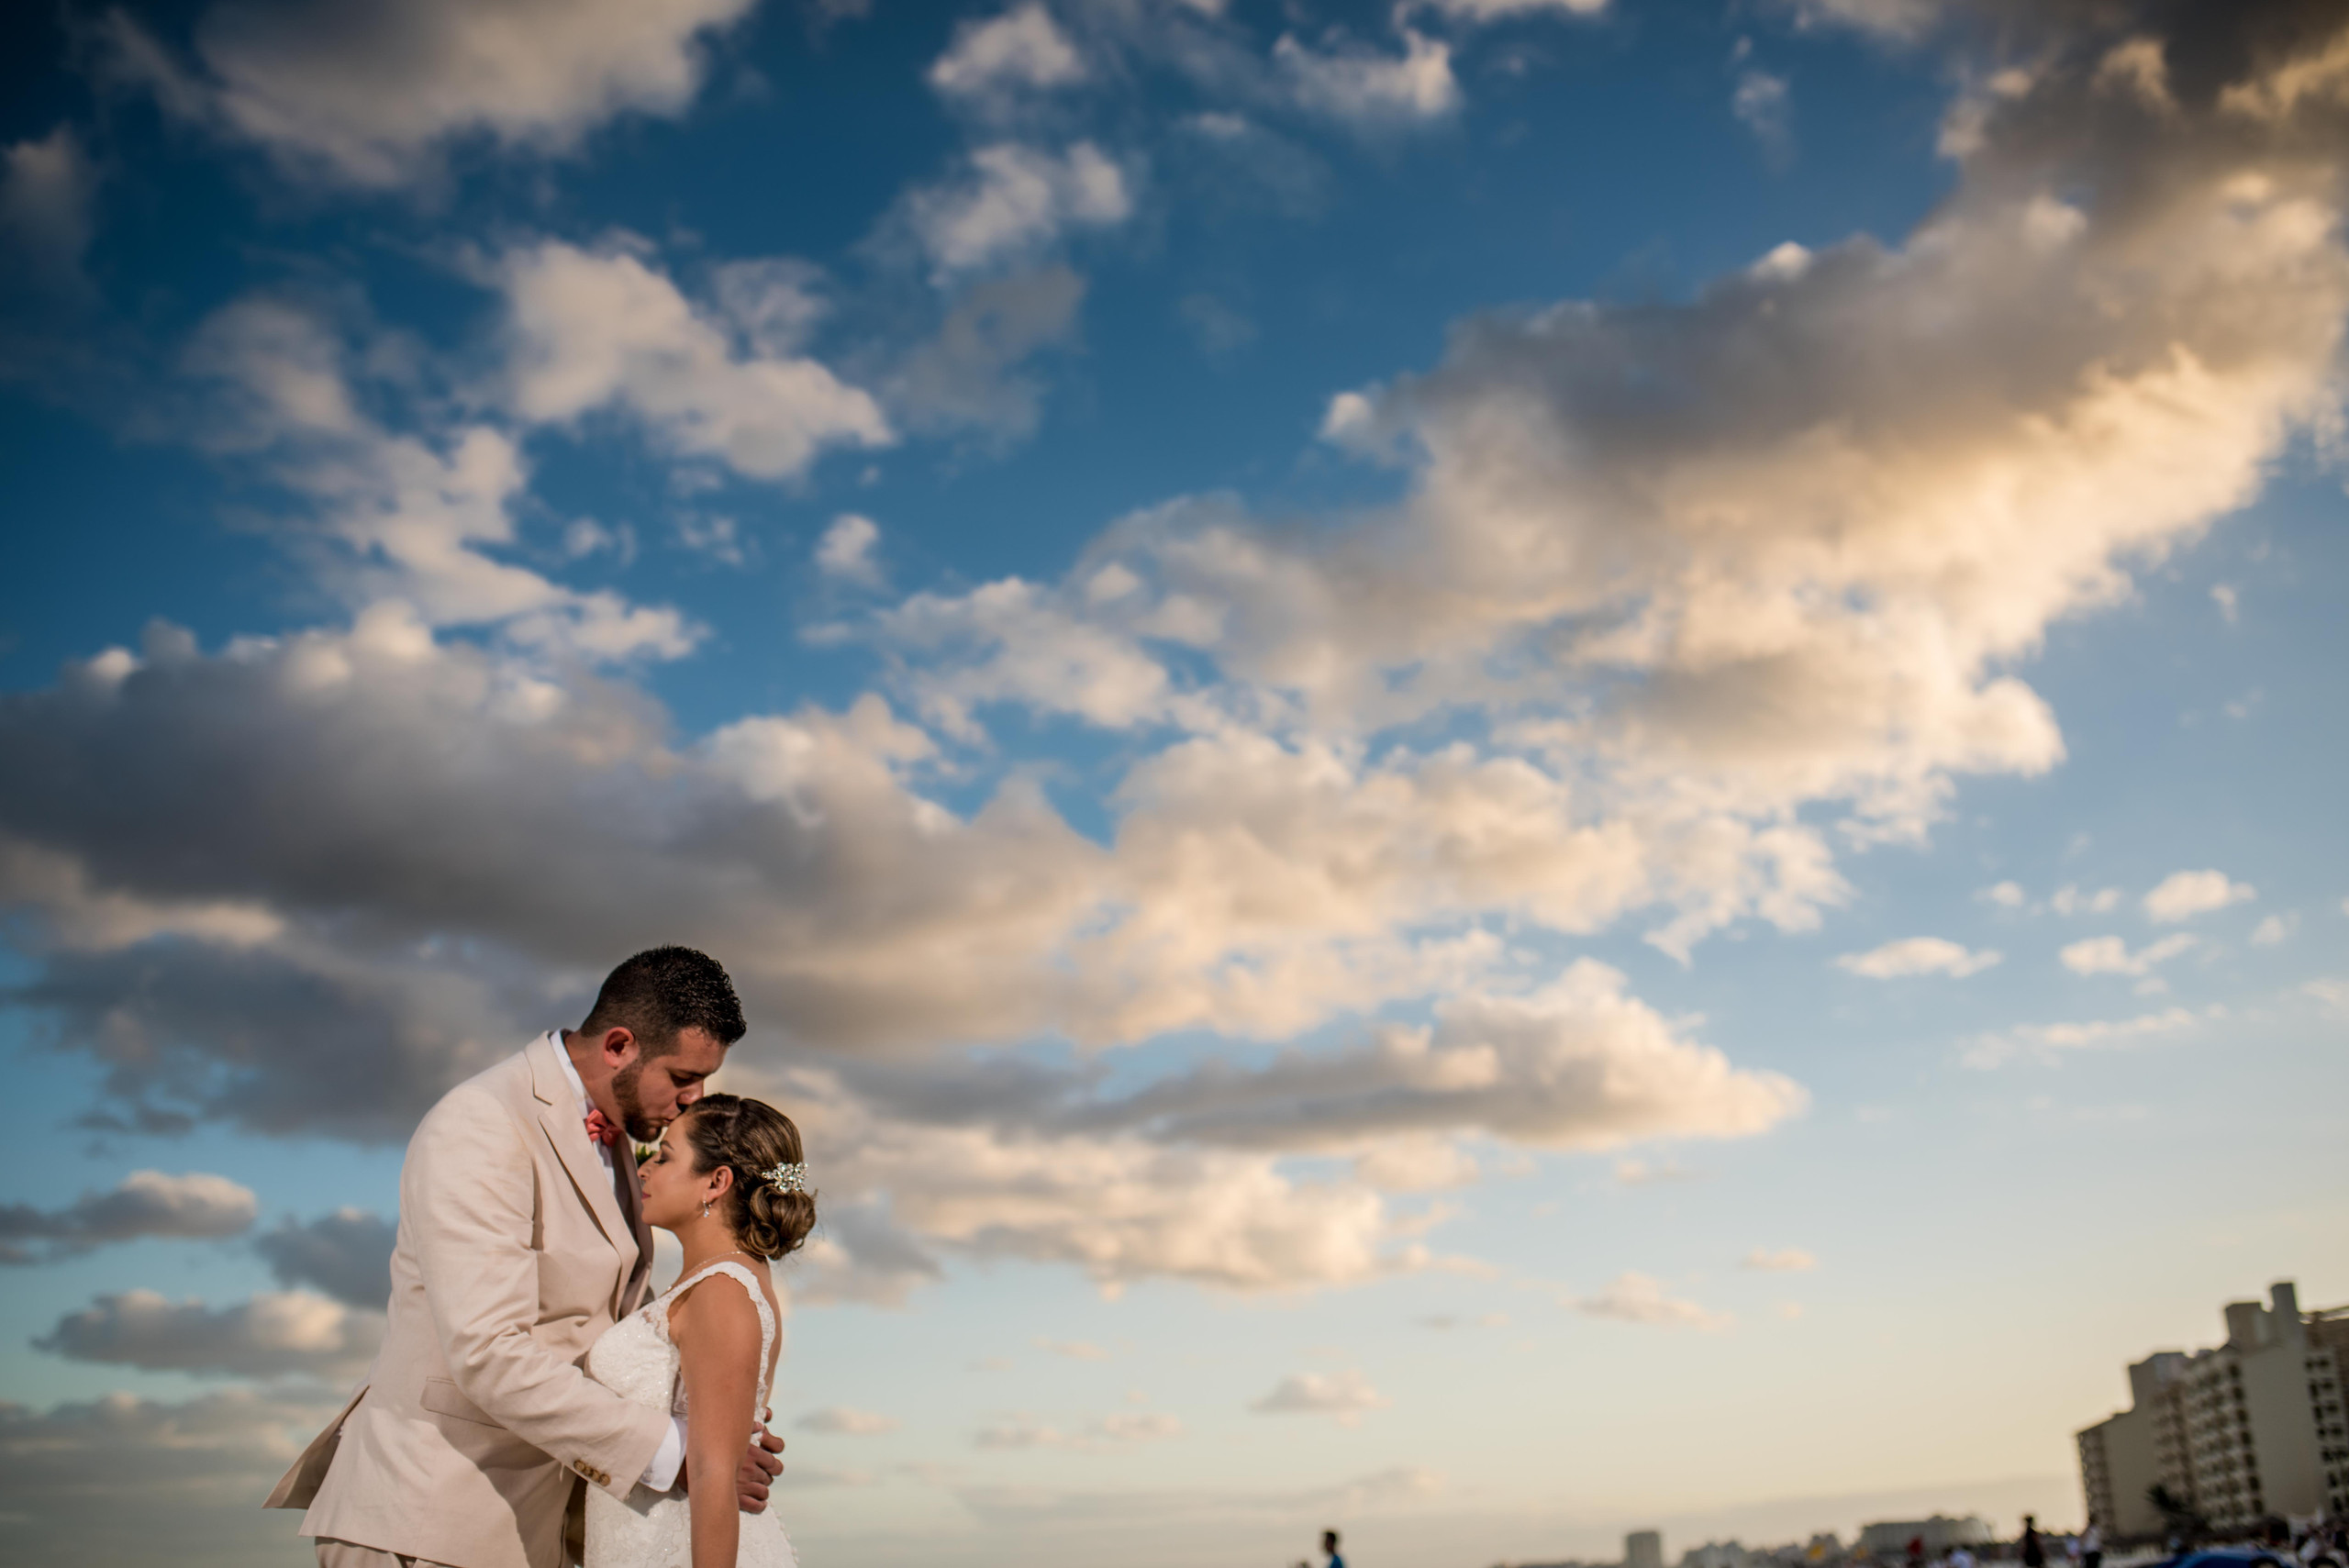 bride+groom+photo+kiss+sunset+beach